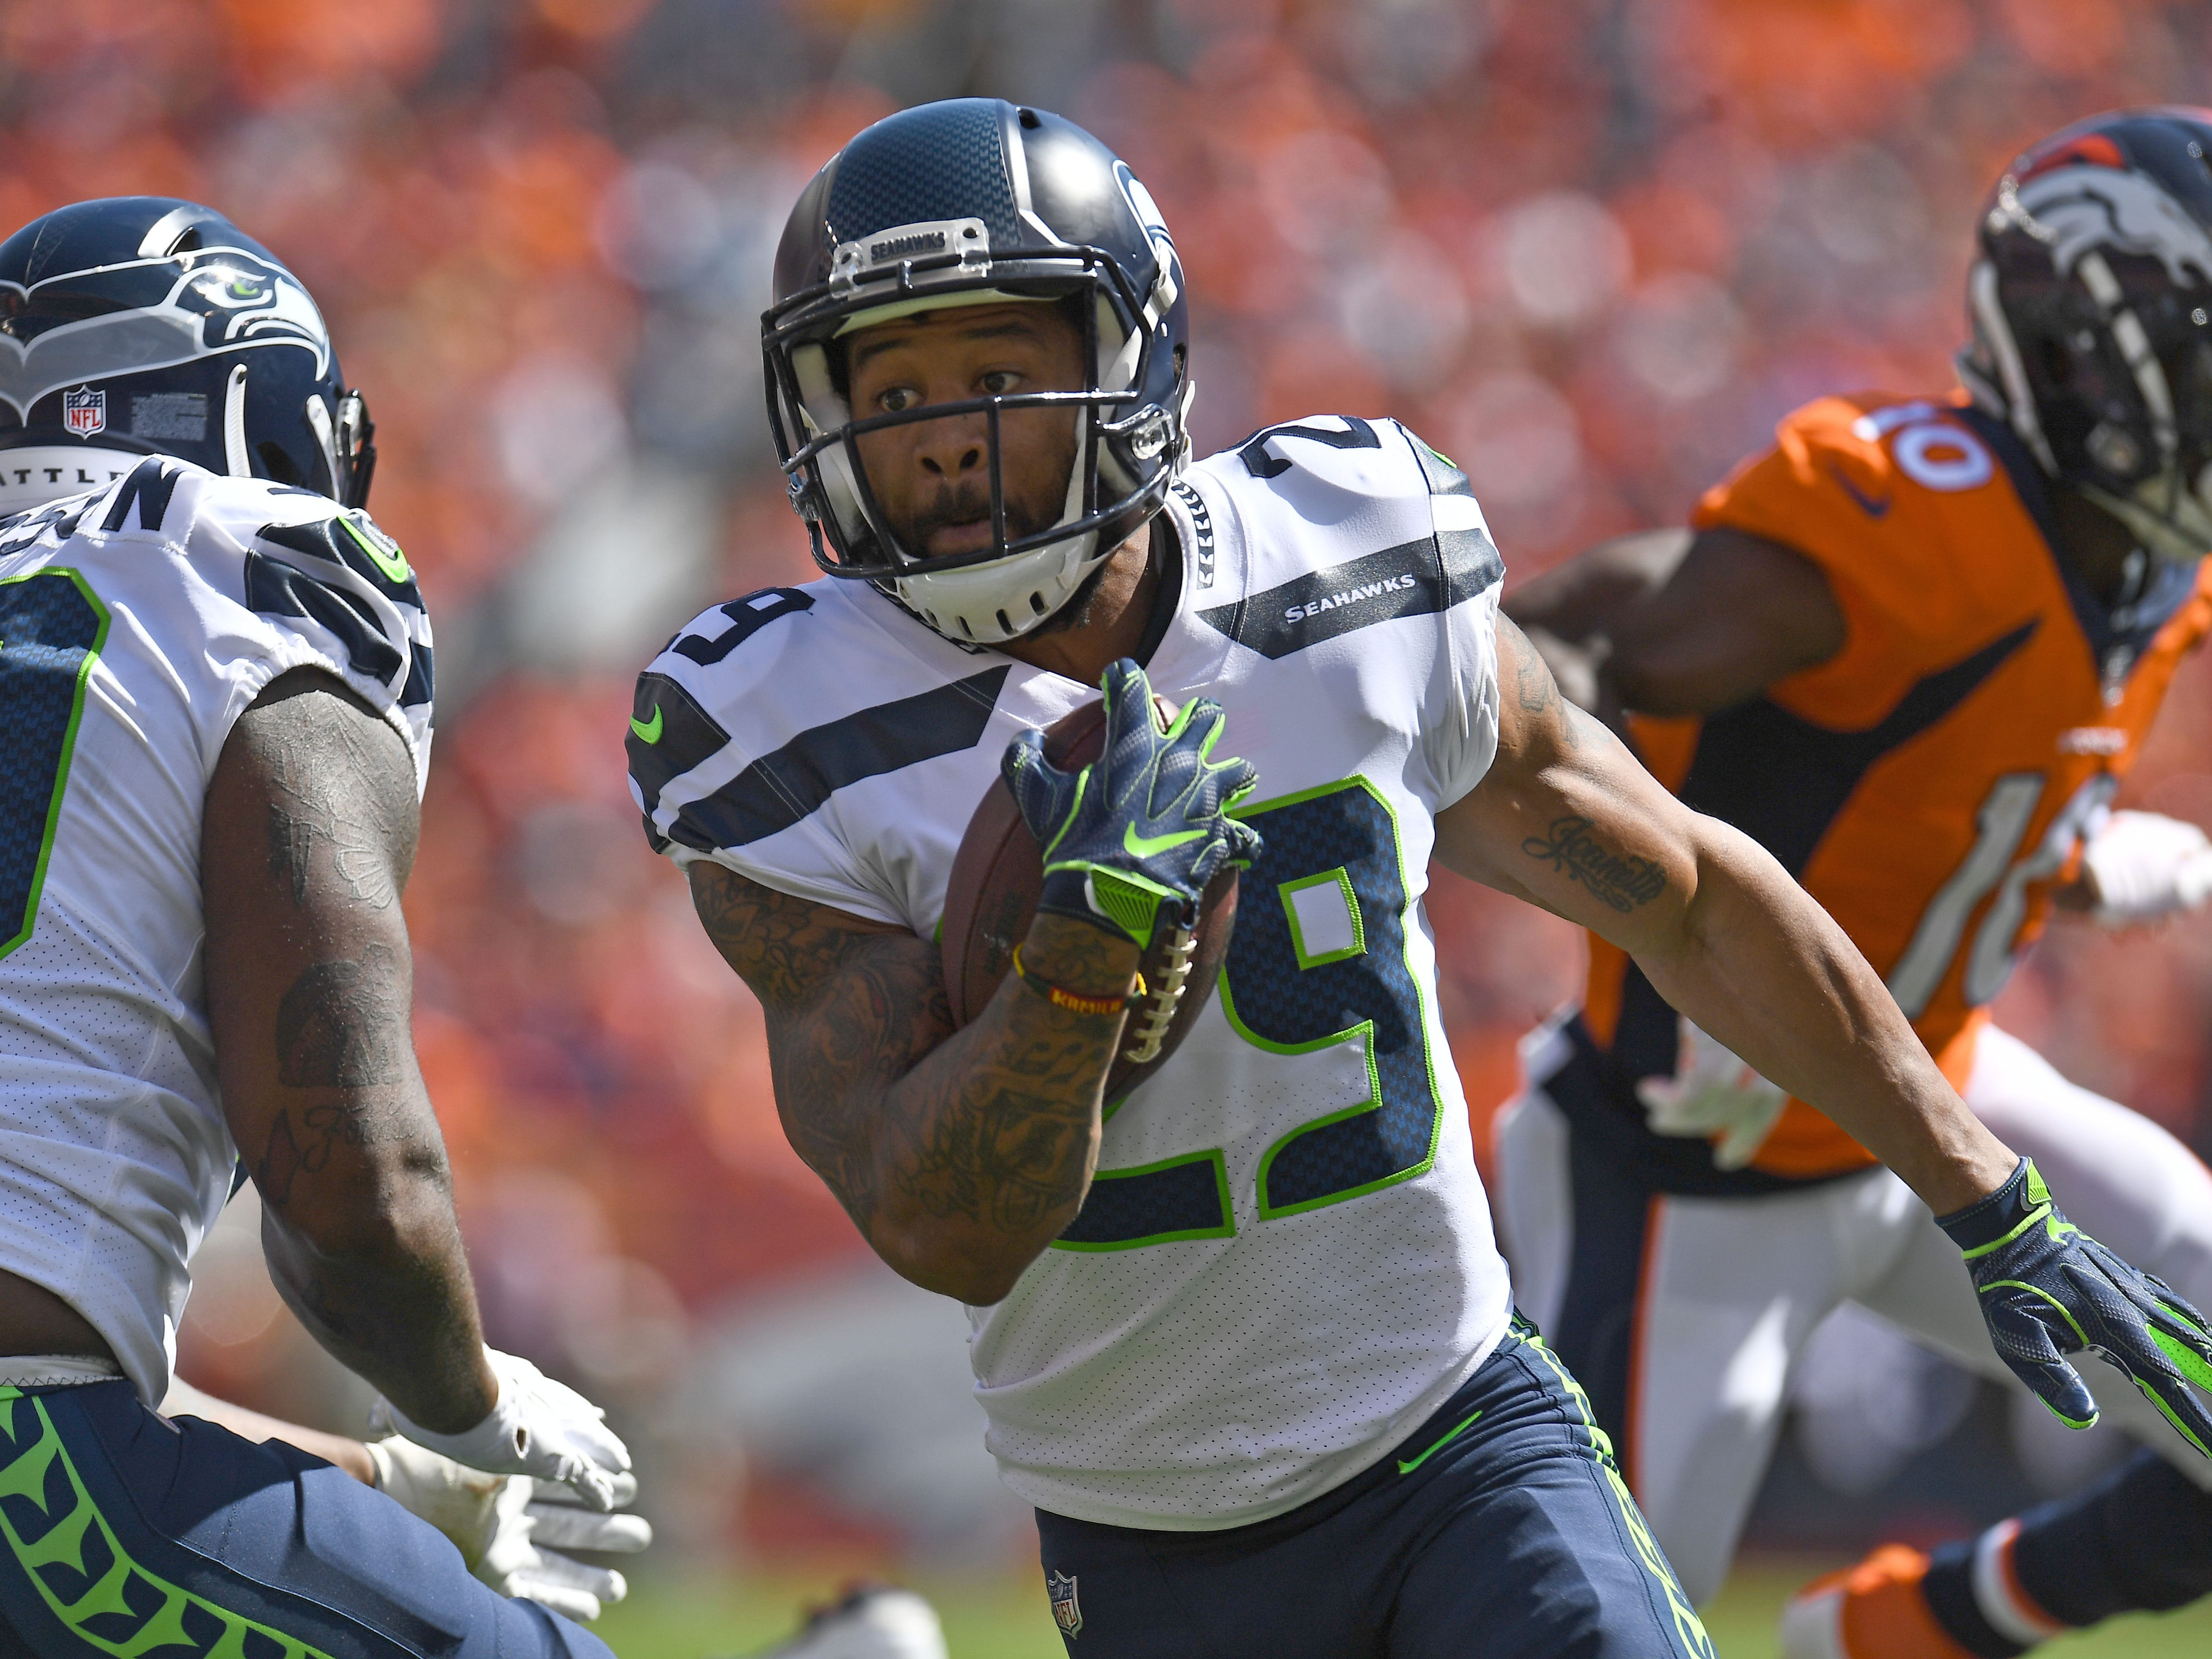 3. Earl Thomas, S, Seahawks: Agreed to deal with Ravens